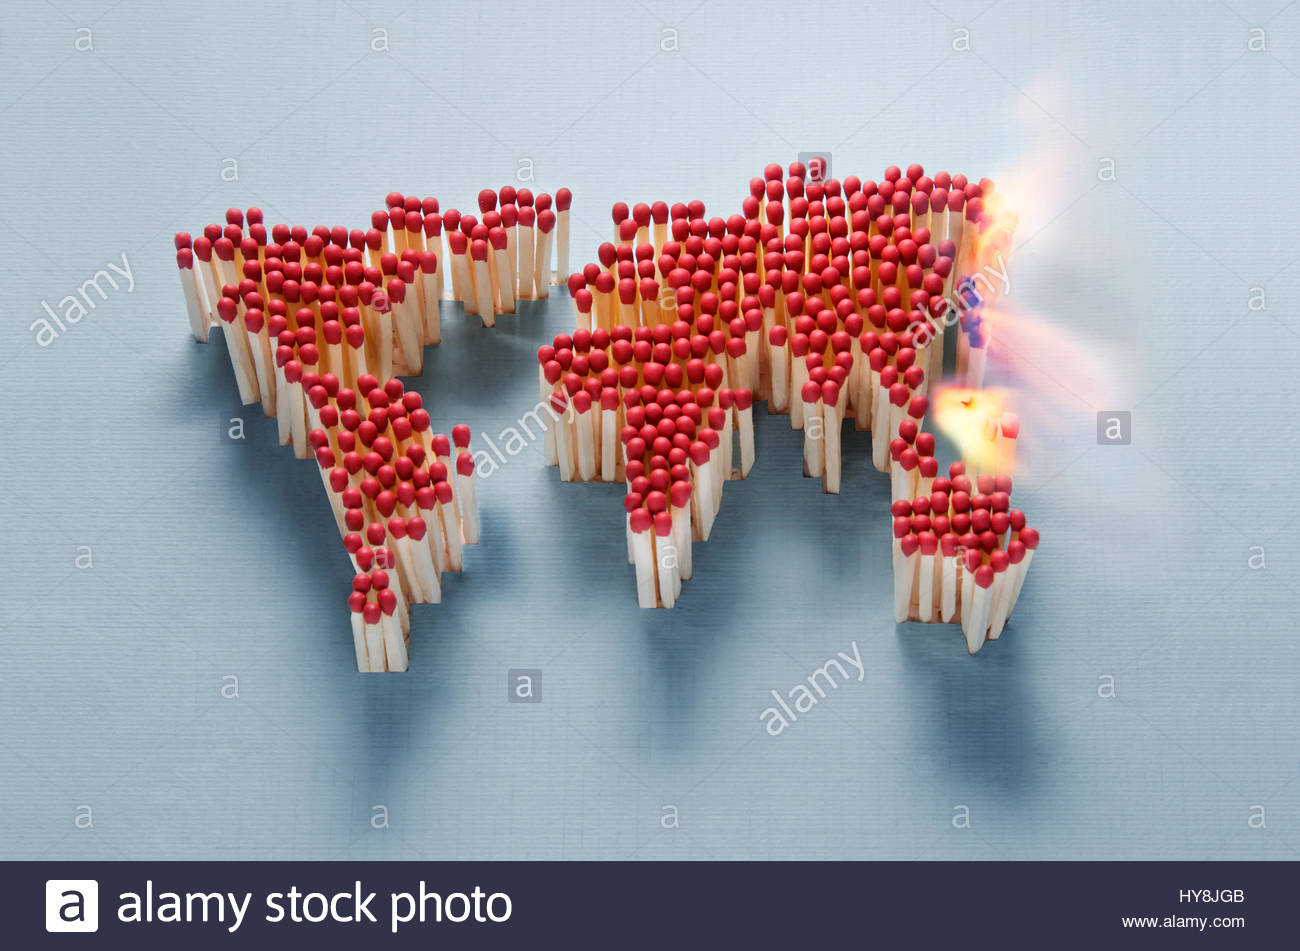 World map made of matches waiting for a spark - Stock Image